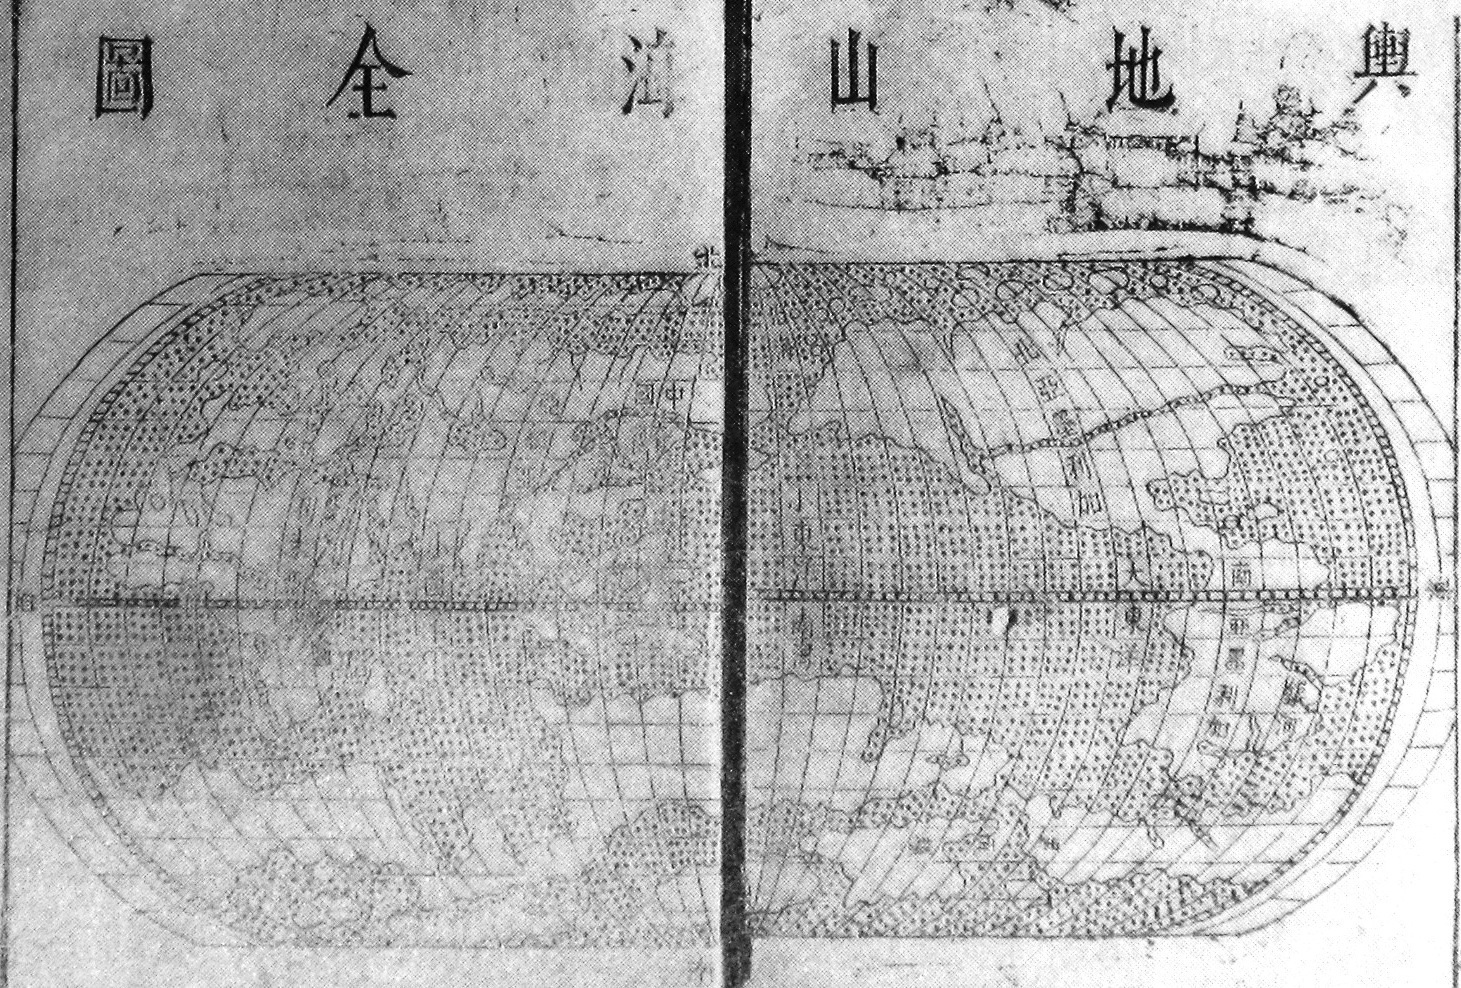 The ca. 1584 Yudi Shanhai Quantu 圖全海山地舆 (Complete Map of Mountains and Sea Geography) map by the Jesuit Priest Matteo Ricci